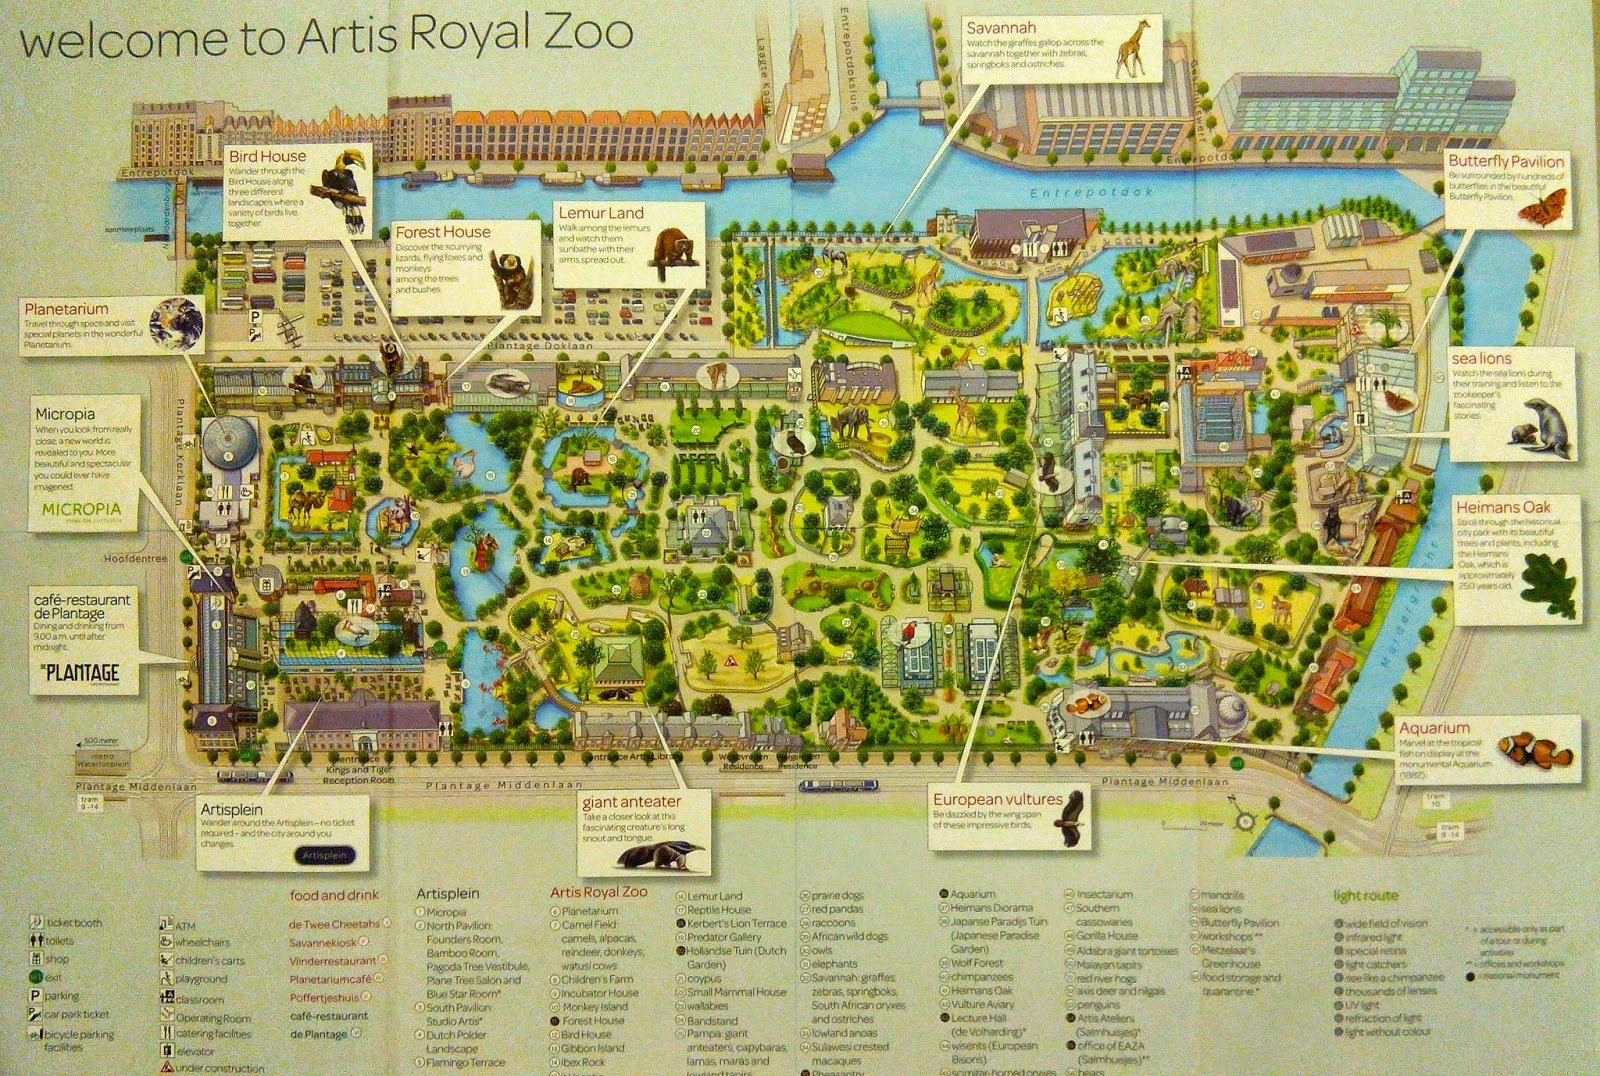 Artis Royal Zoo Amsterdam, AHEH: Amsterdam: I AMSTERDAM (Artis Royal Zoo and NEMO Science Centre)